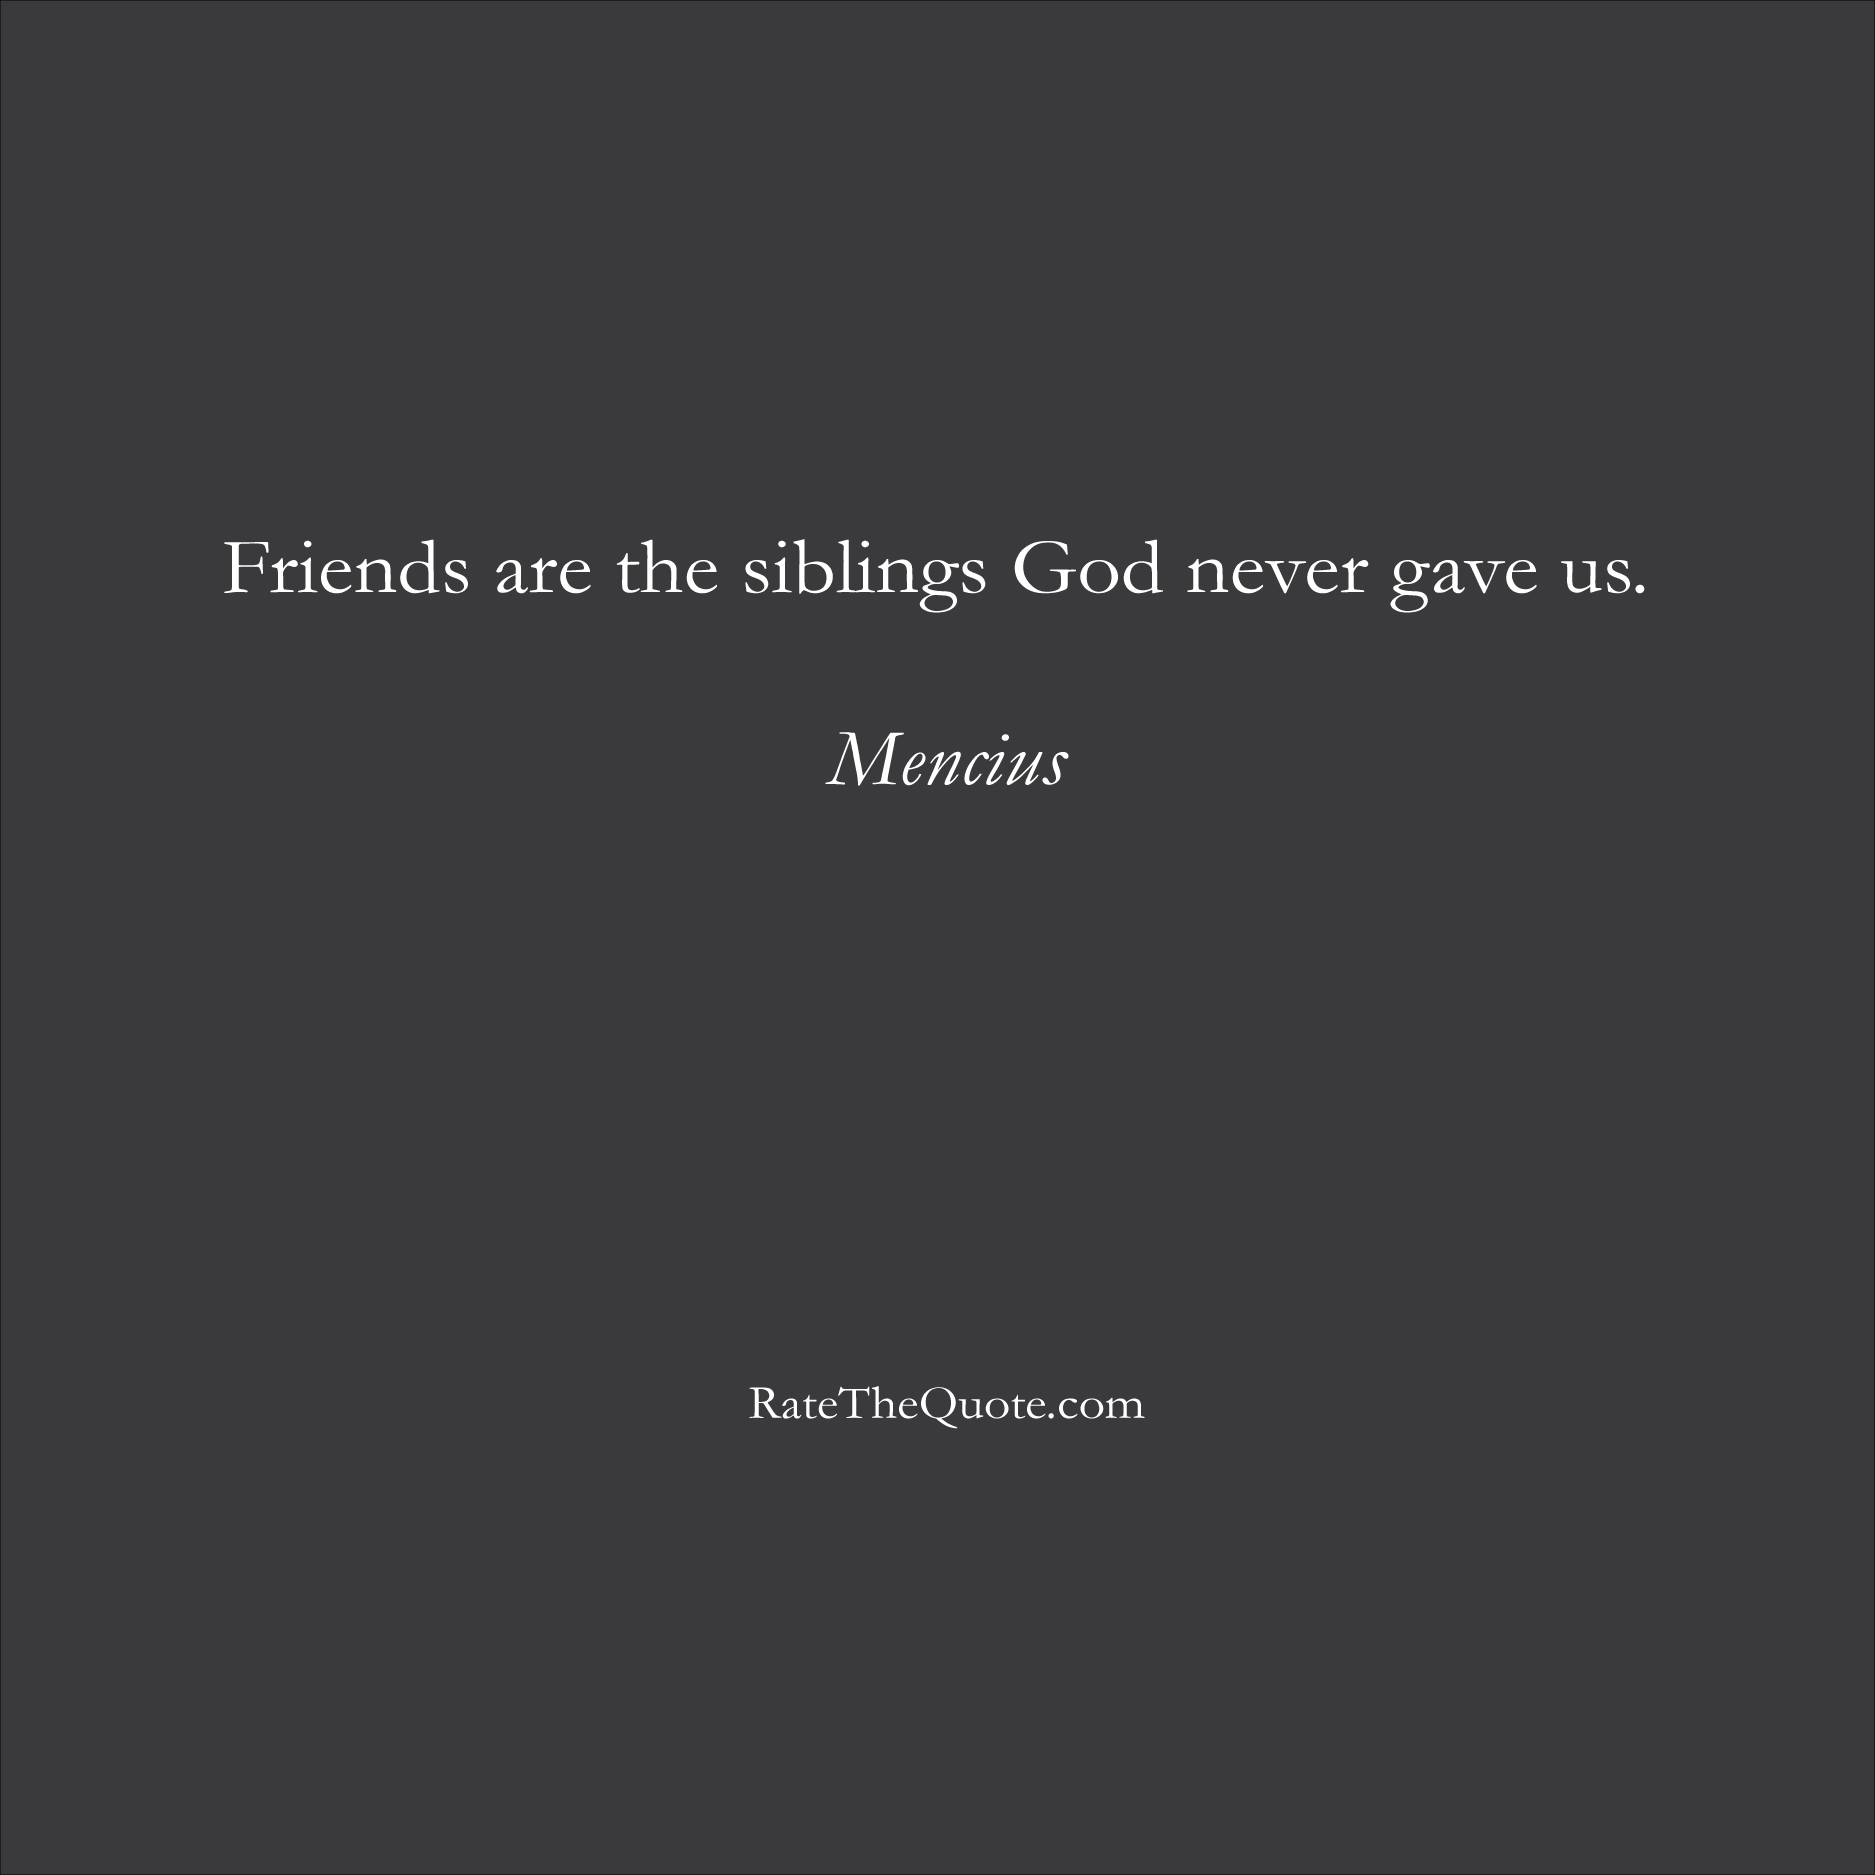 Image Quotes About Friendship Friendship Quotes Archives  Ratethequote